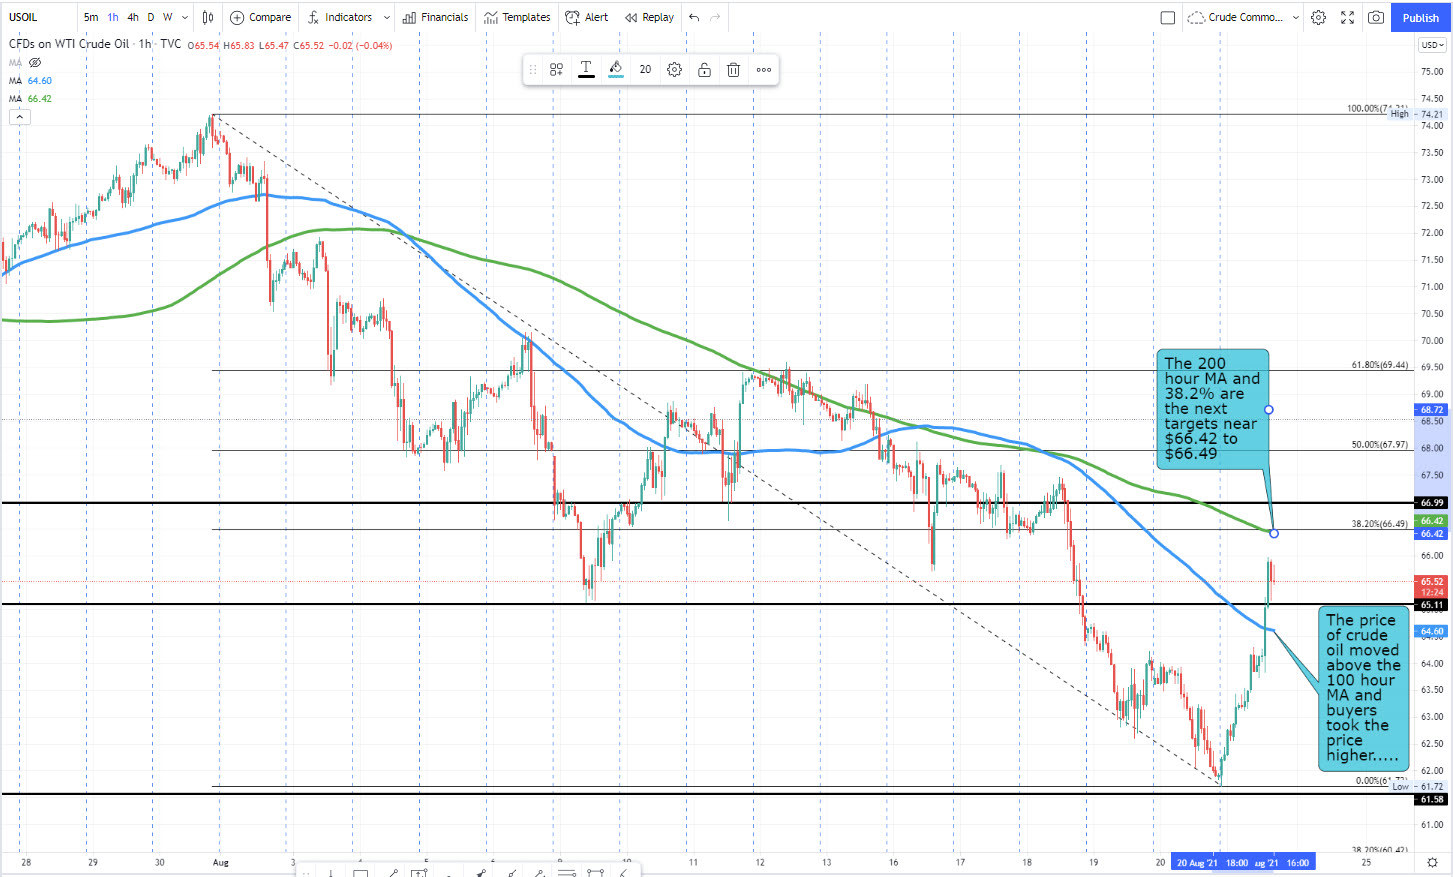 Crude oil on the hourly chart